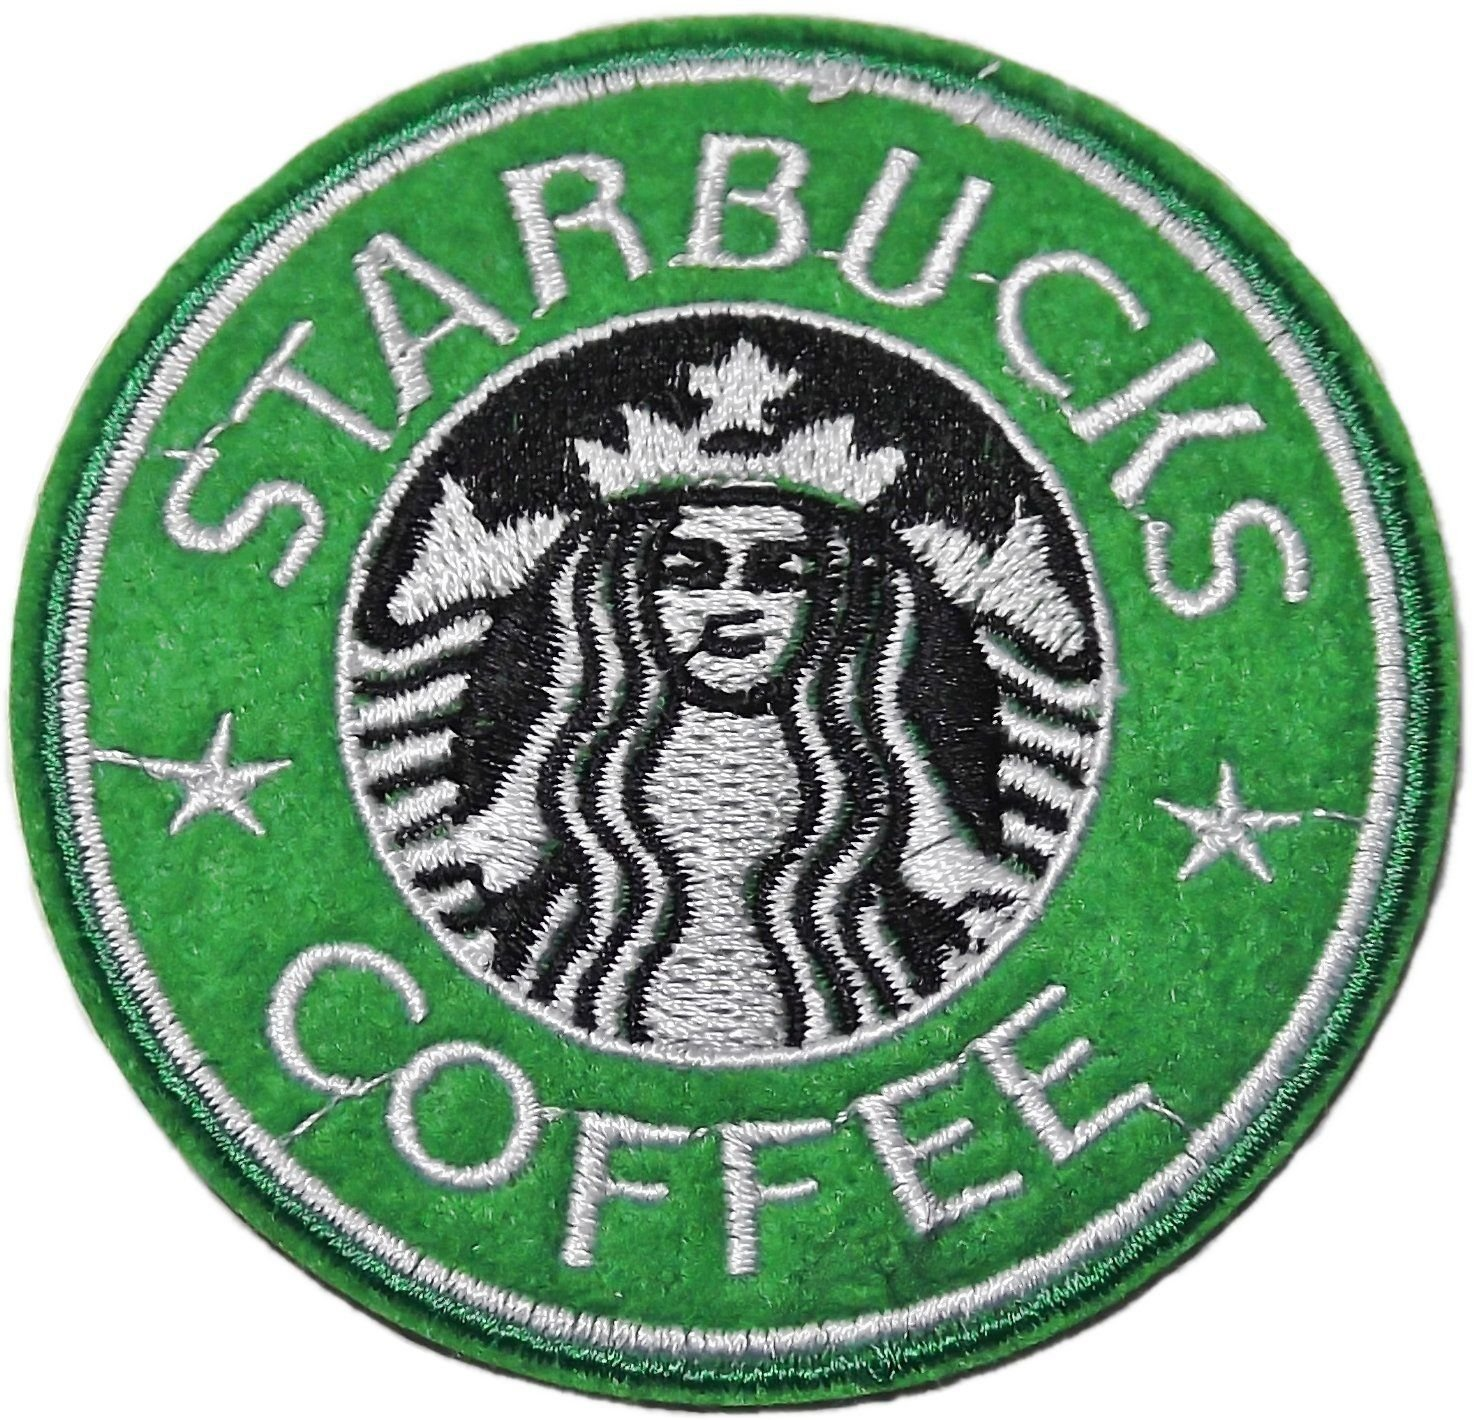 3 starbucks logo Embroidered Iron On/Sew On Patch Braides